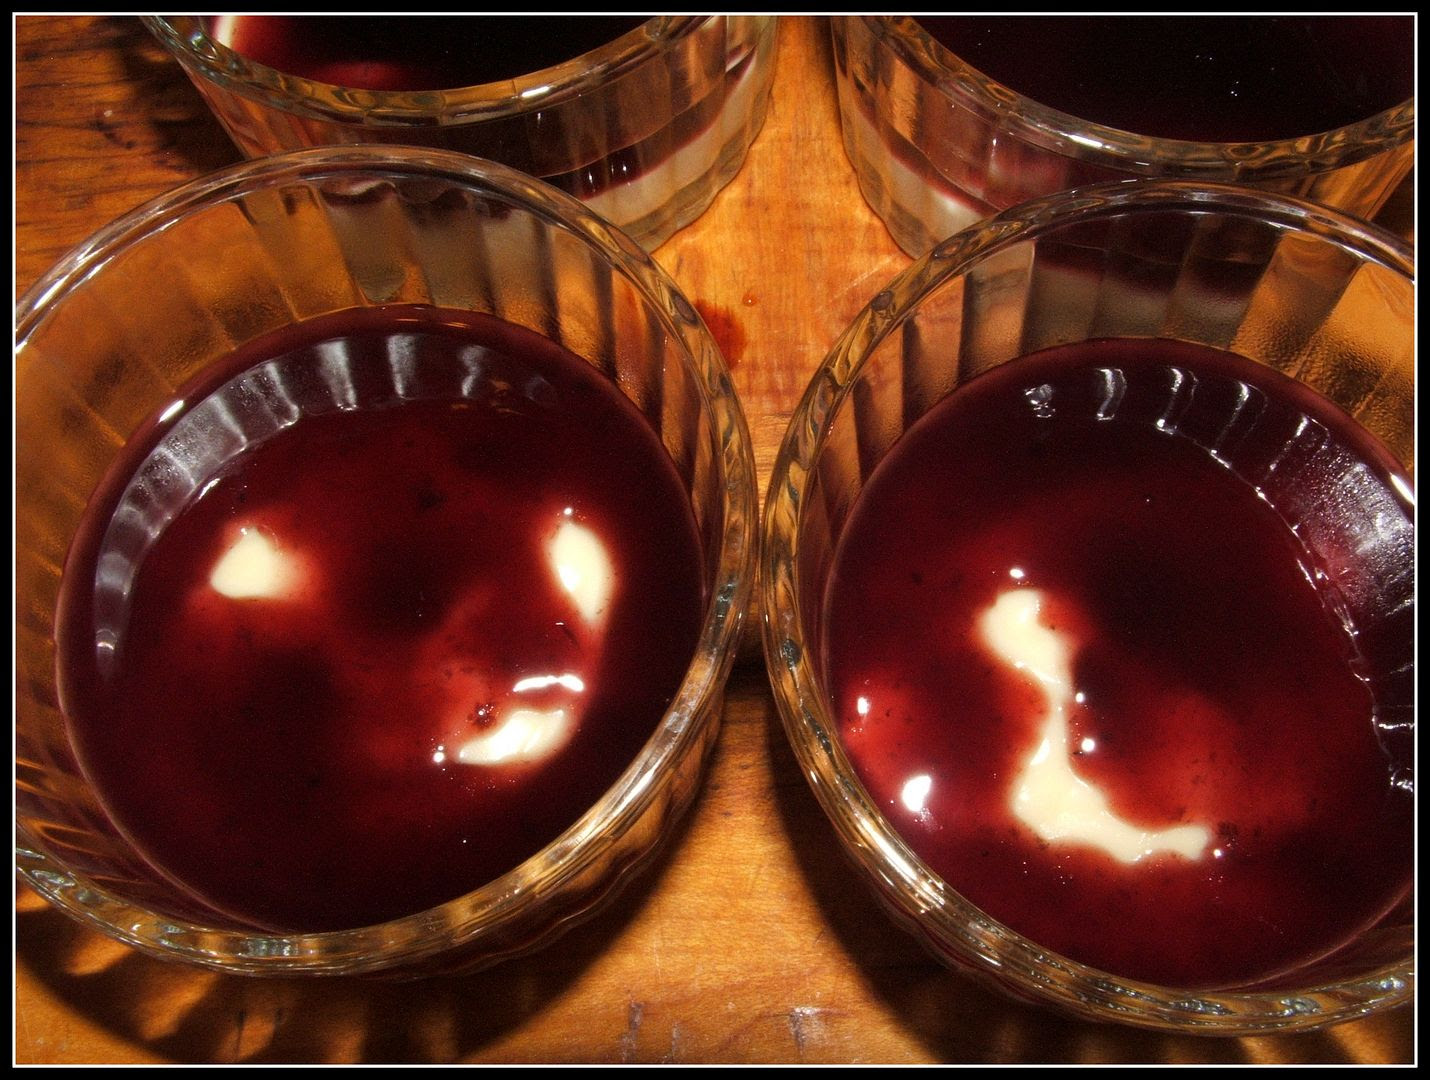 Blueberry Vanilla Creme Brulee by Angie Ouellette-Tower for godsgrowinggarden.com photo 009_zpsca74d2b8.jpg